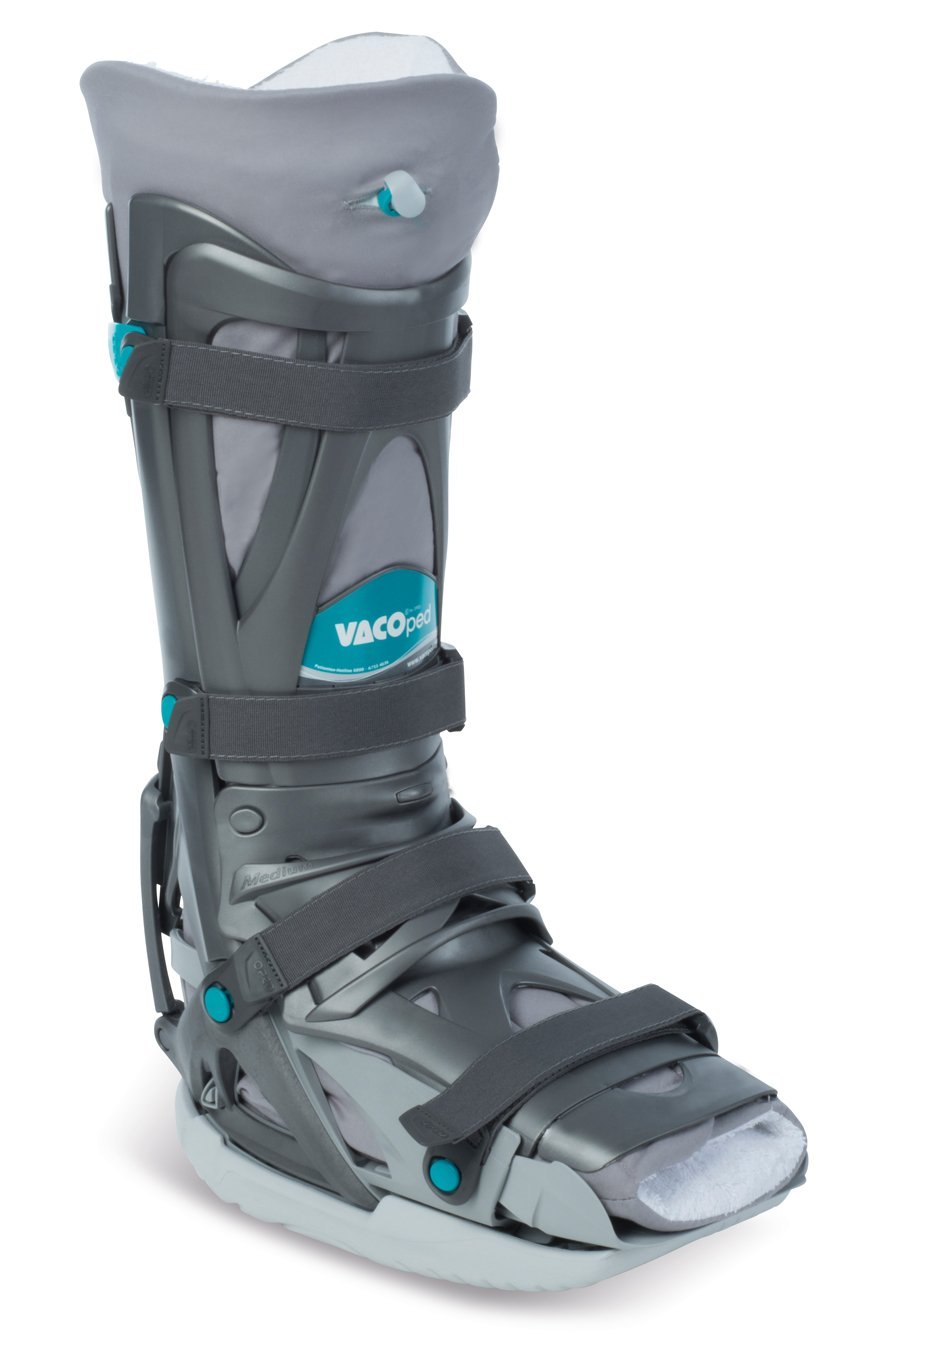 VACOped Achilles Injury/Fracture Orthosis Boot - Simply The Best Boot on The Market!